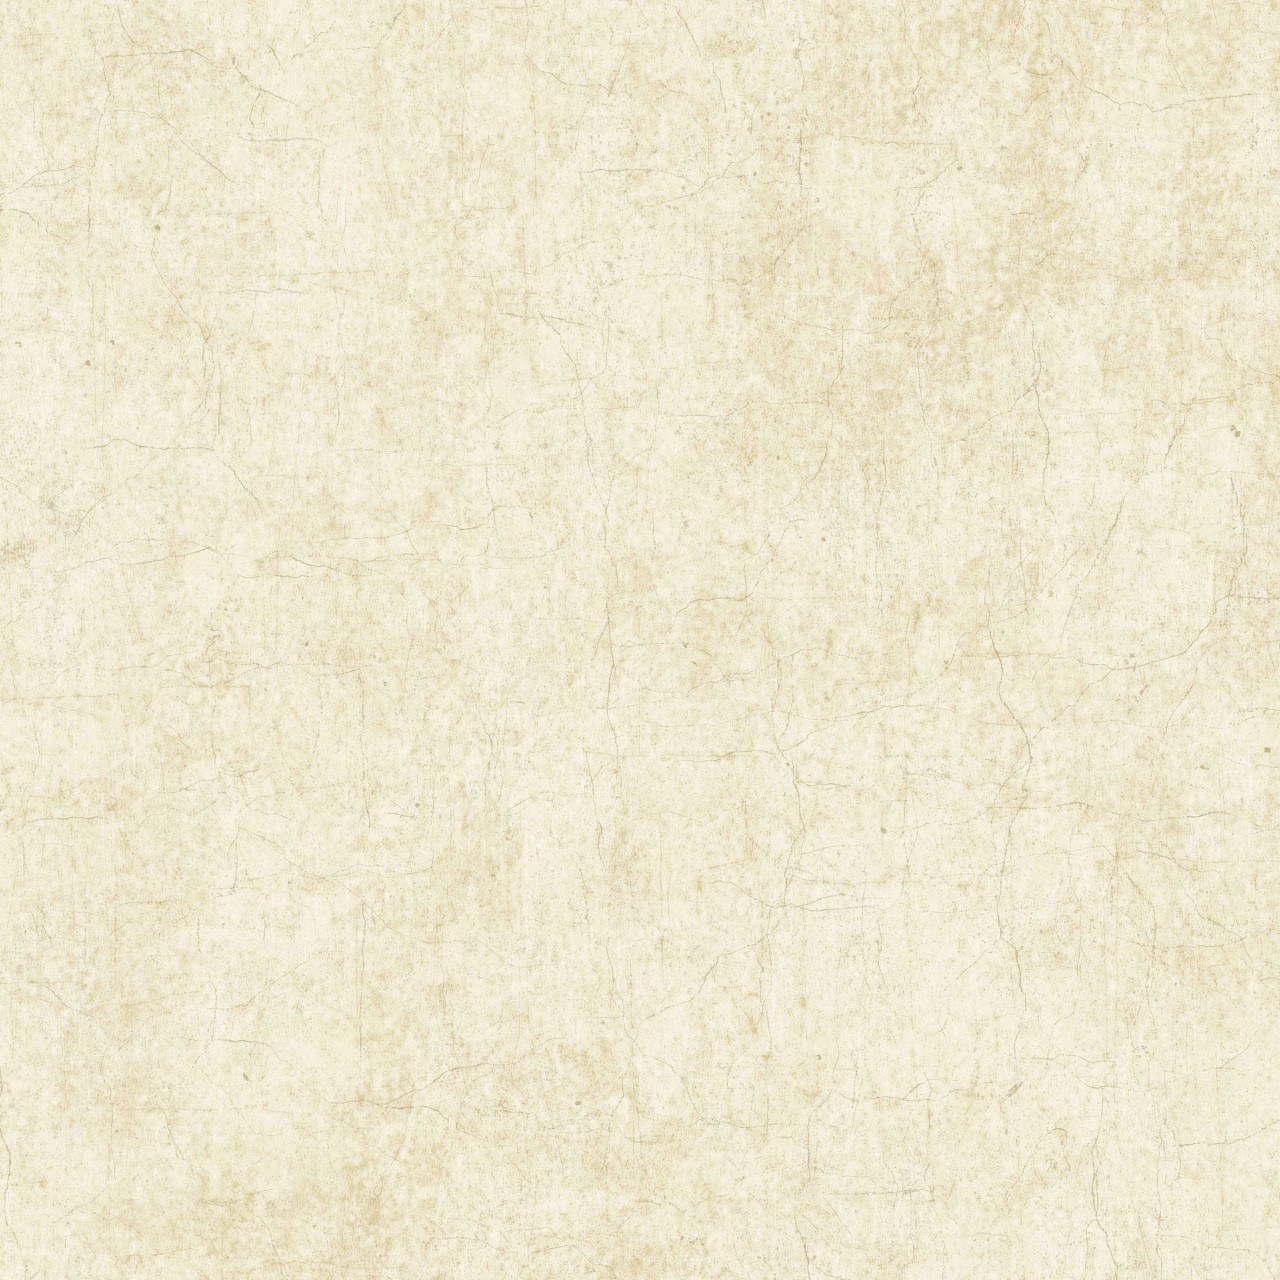 Cream textured wallpaper for Embossed wallpaper